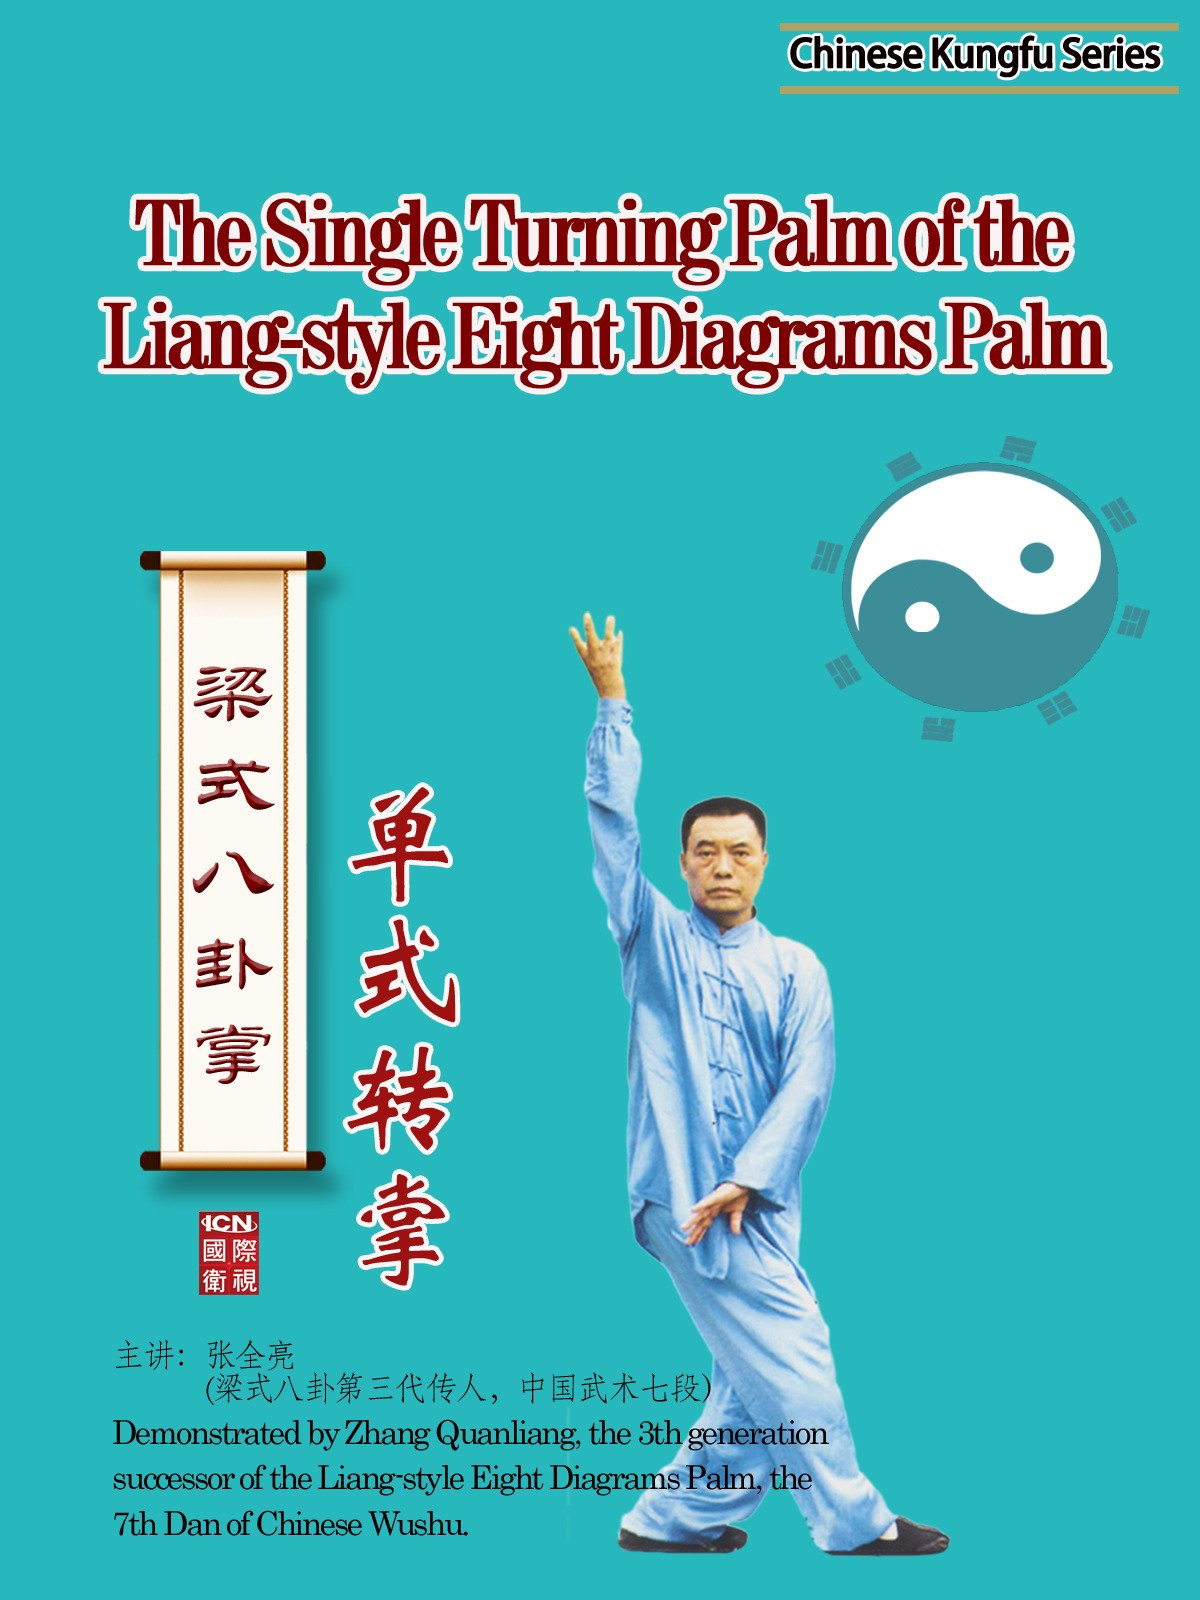 The Single Turning Palm of the Liang-style Eight Diagrams Palm(Demonstrated by Zhang Quanliang)